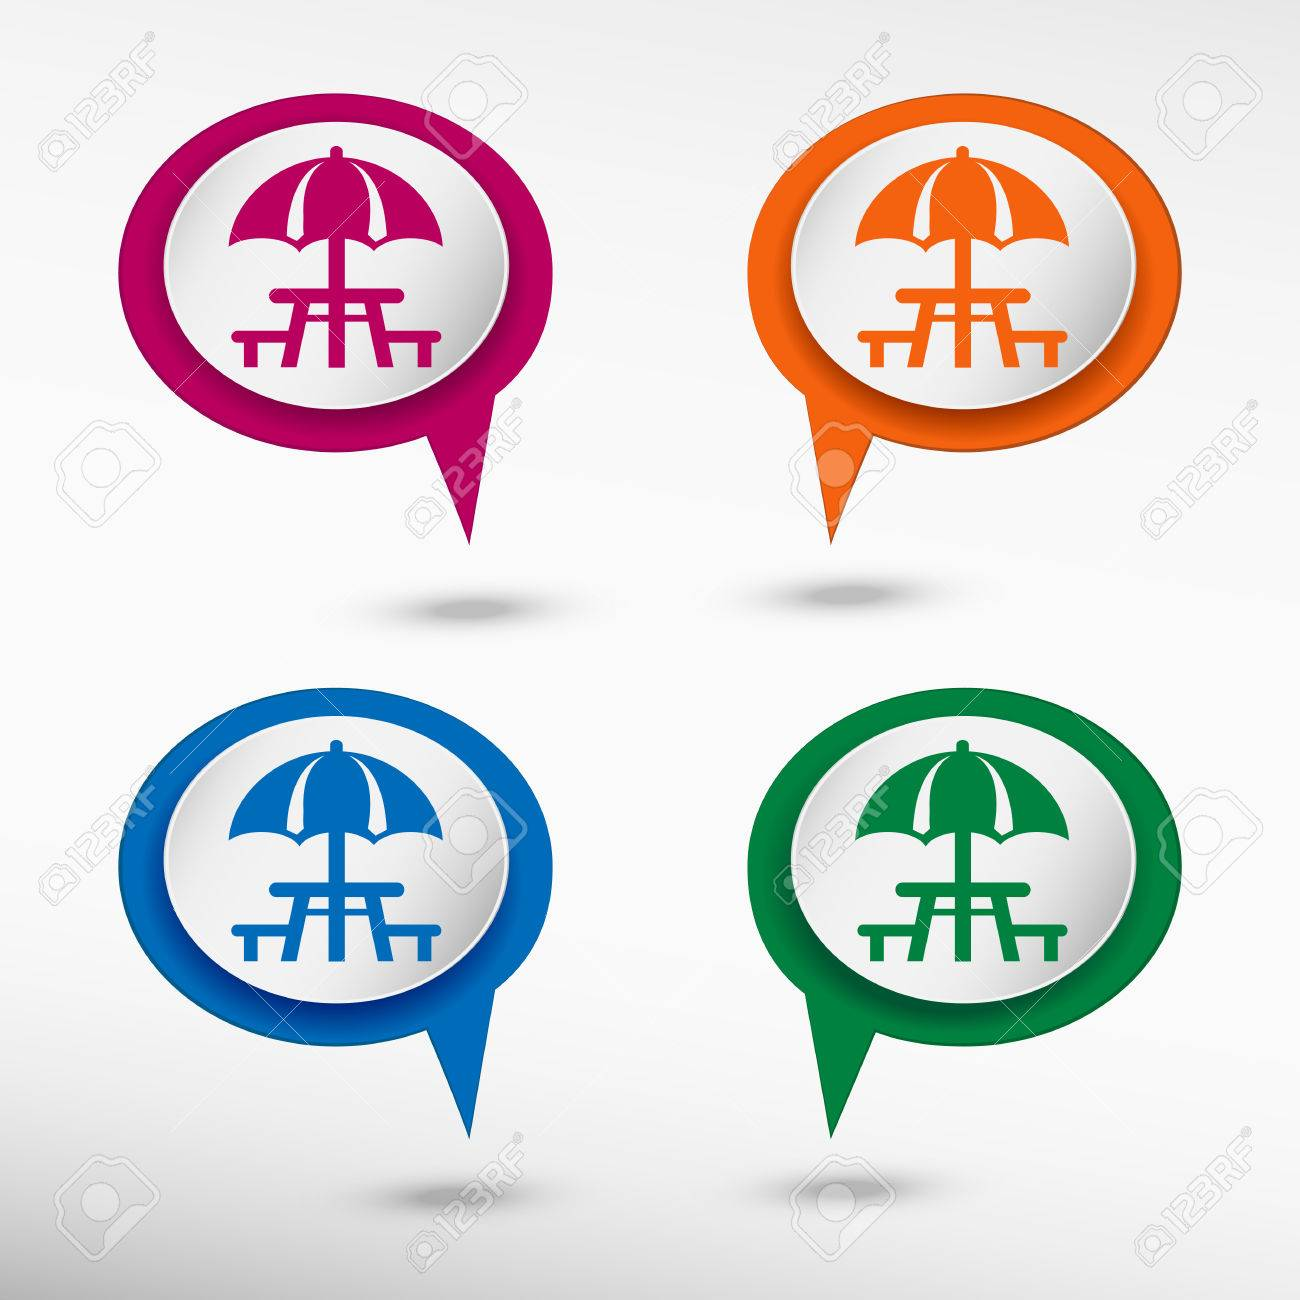 Camping and picnic table icon on colorful chat speech bubbles camping and picnic table icon on colorful chat speech bubbles stock vector 42261236 biocorpaavc